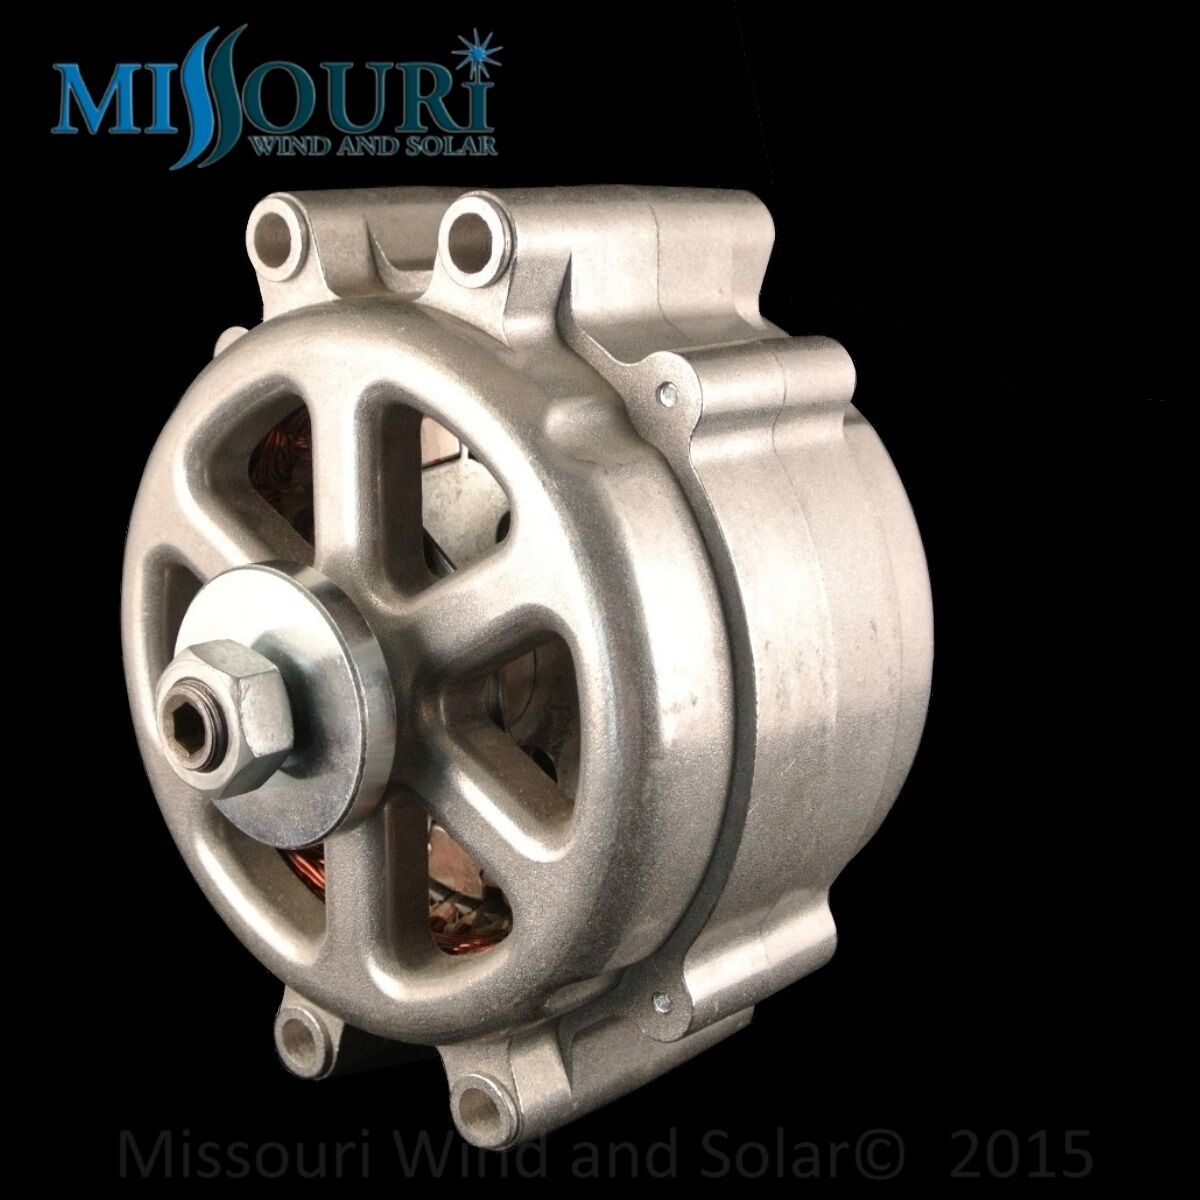 Details About Freedom Pmg 48 Volt Permanent Magnet Alternator Generator 4 Wind Turbine No Cog